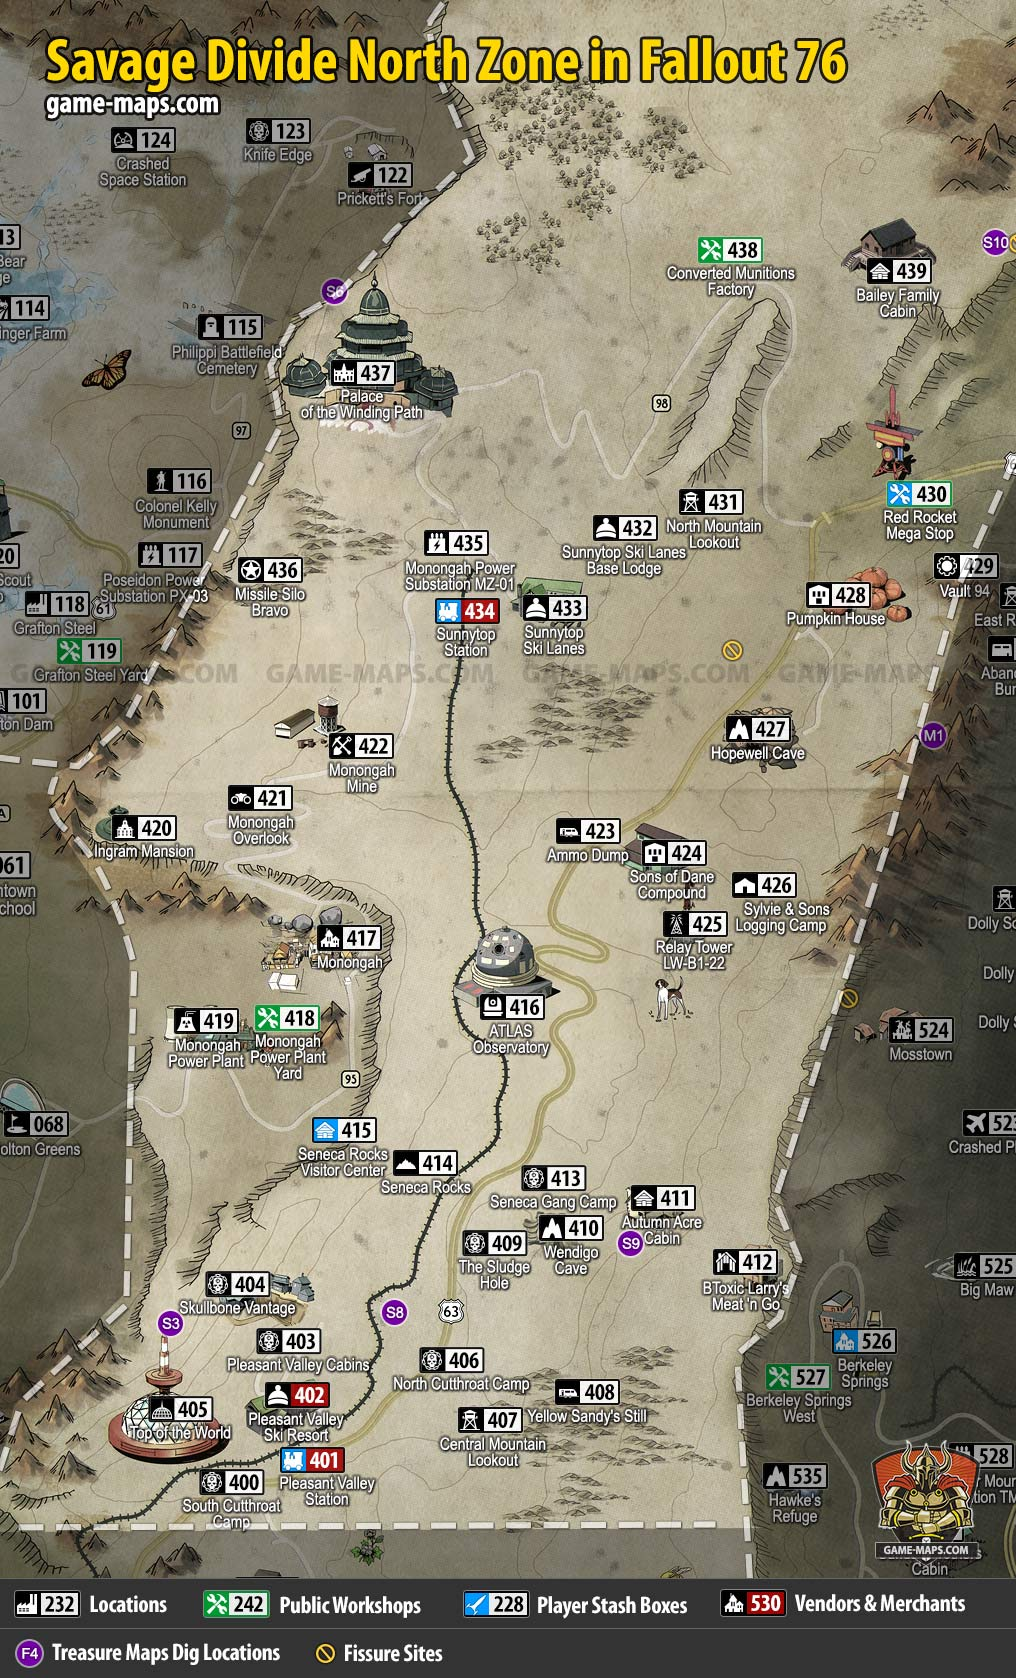 Fallout 76 Forest Treasure Map 2 : fallout, forest, treasure, Savage, Divide, North, Fallout, Game-maps.com